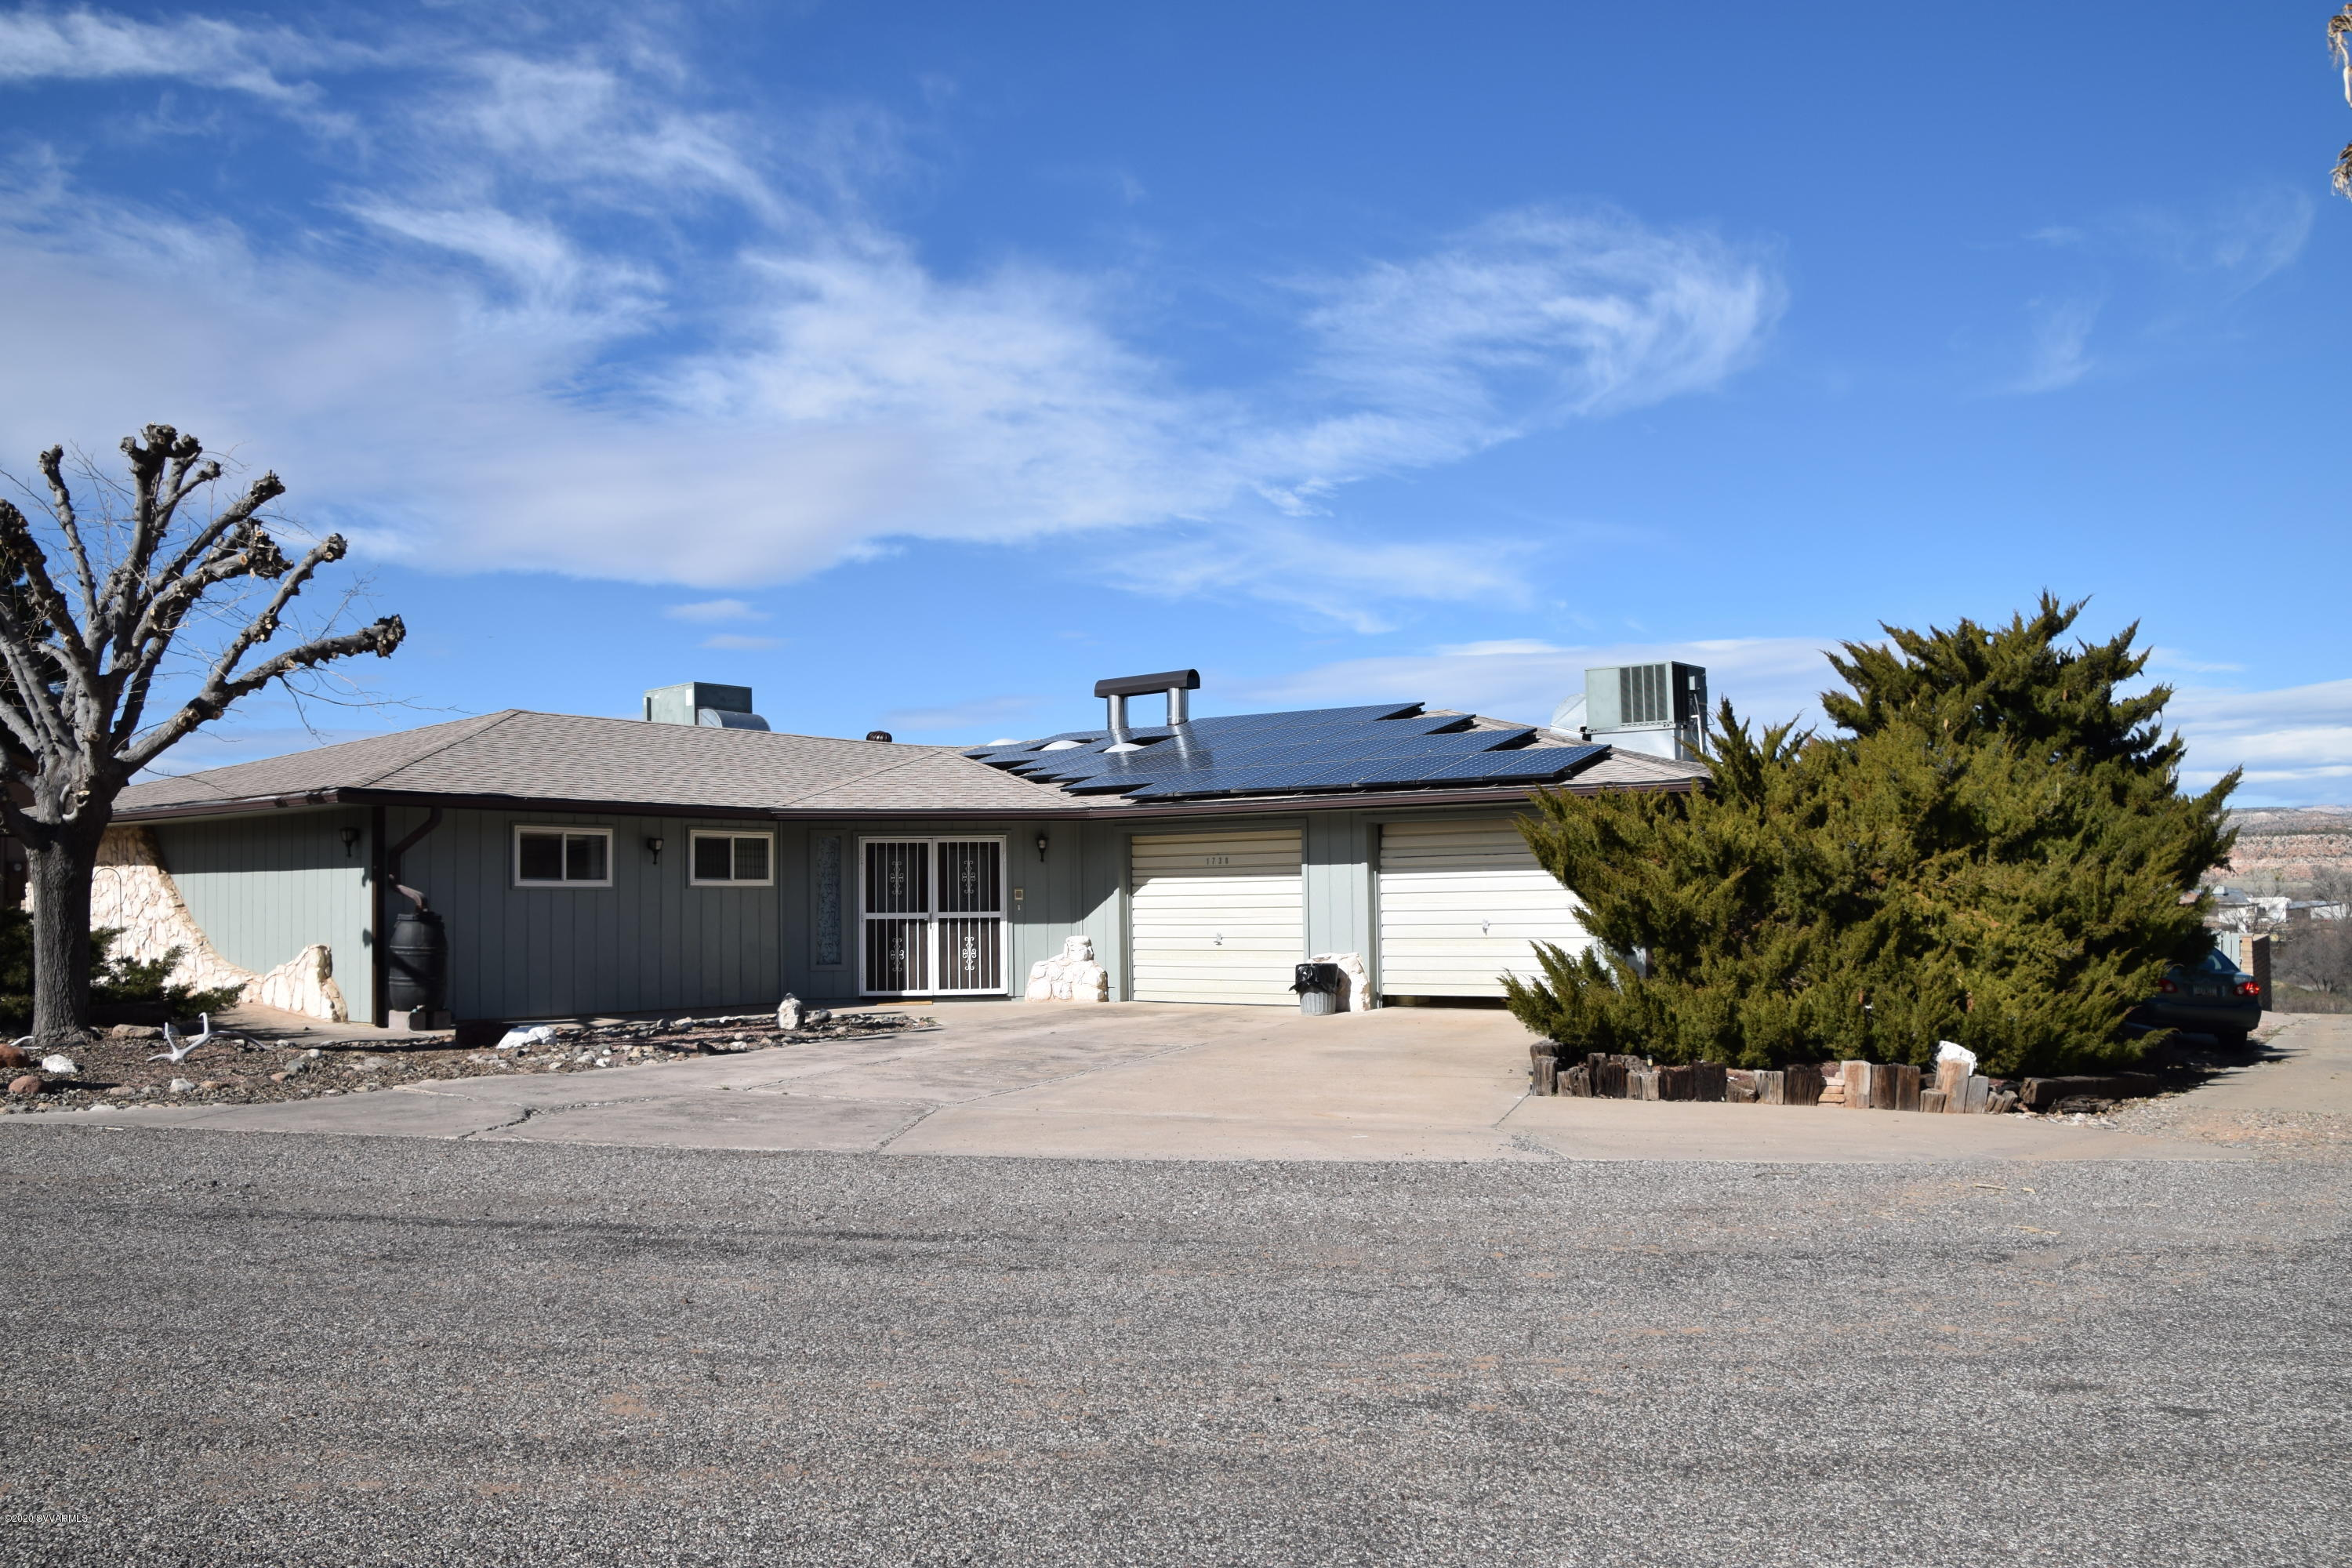 Photo of 1738 Sawmill Rd, Cottonwood, AZ 86326